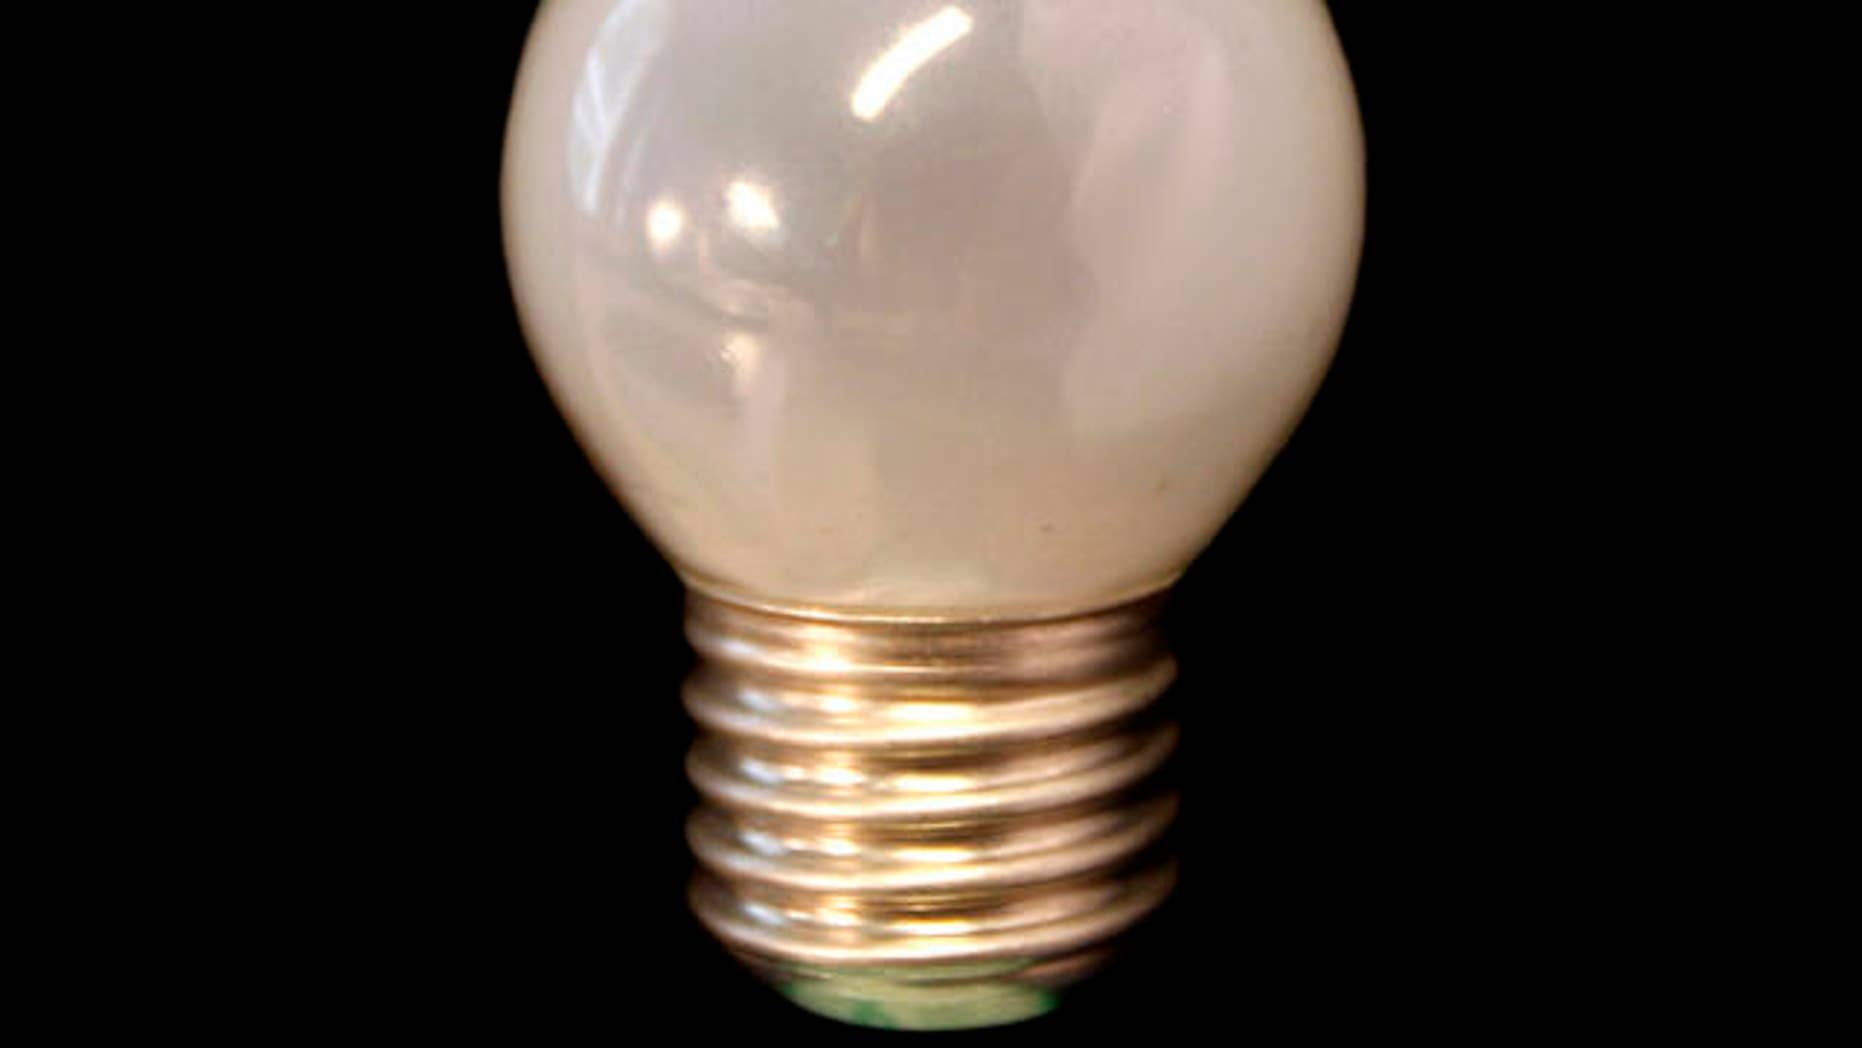 An older style frosted 60 watt incandescent bulb is seen in Brussels, Tuesday Sept. 1, 2009. The EU on Tuesday began making the transition from power-draining lightbulbs to more energy efficient ones. The new EU rules follow an agreement reached by the 27 EU governments last year to phase out the traditional incandescent lightbulb over three years starting this year to help European countries lower greenhouse gas emissions. The older lightbulbs will be replaced by halogen or long-life fluorescent bulbs. (AP Photo/Virginia Mayo)